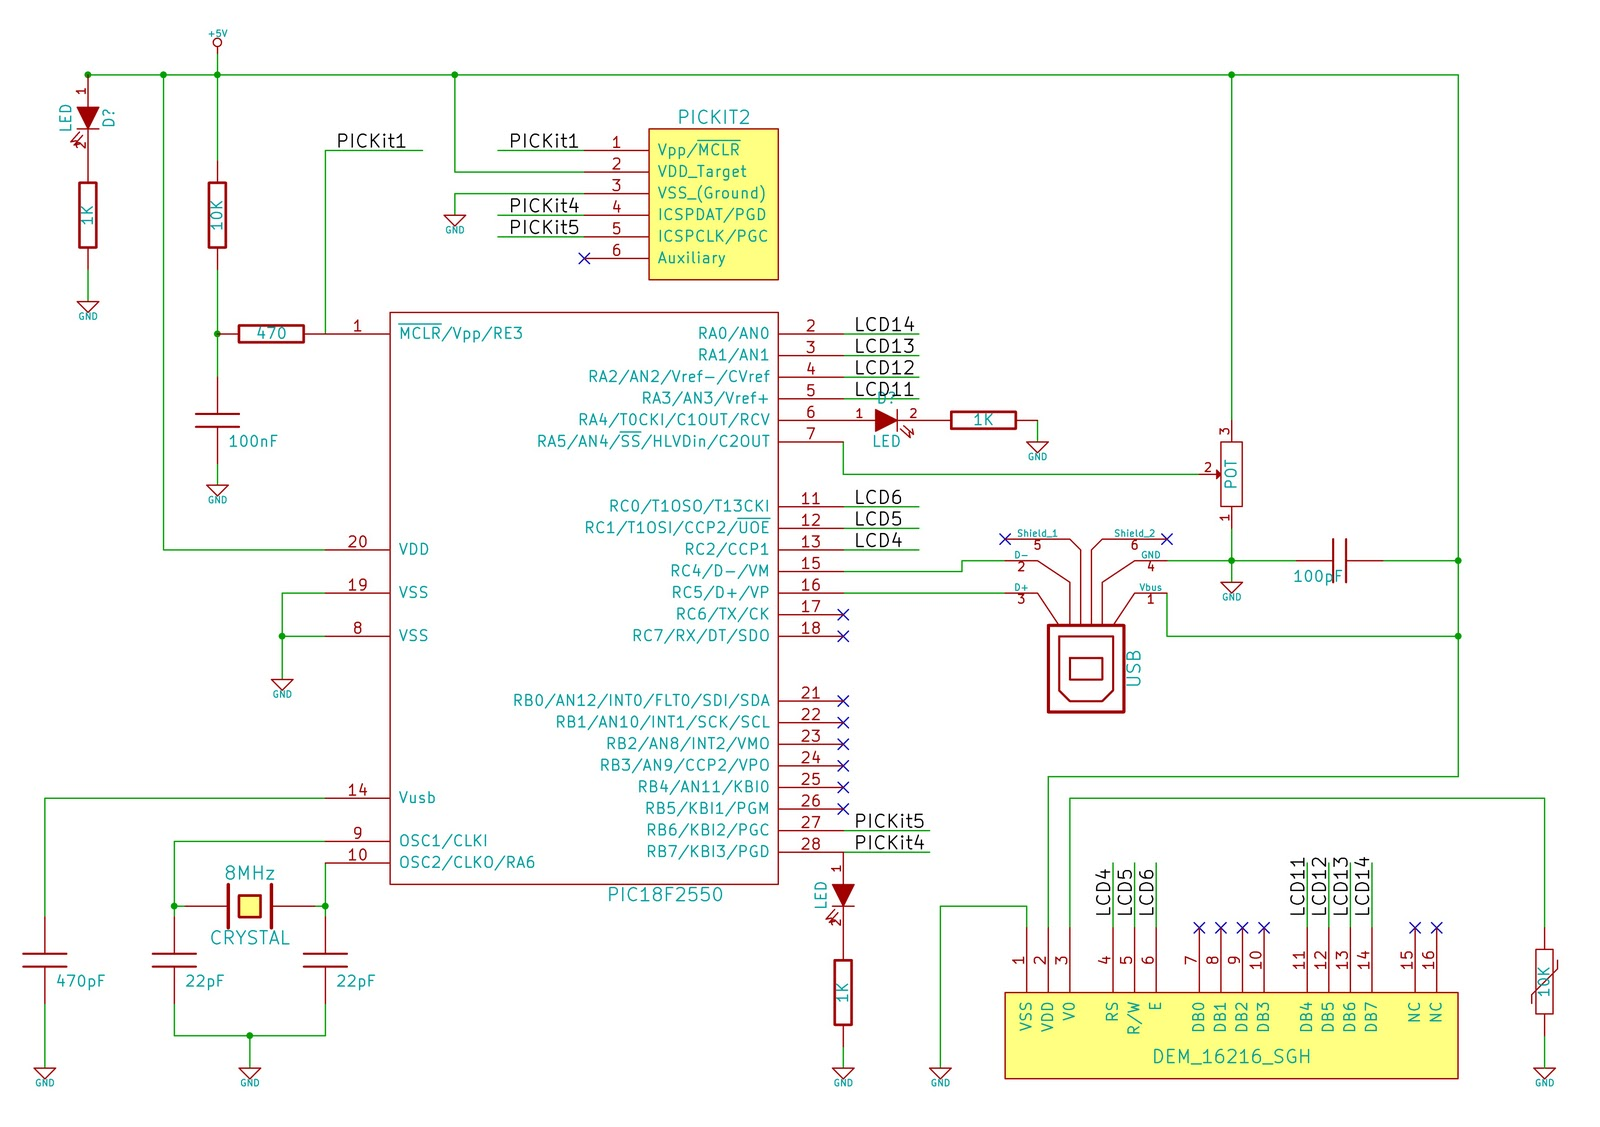 Electronic Usb To Dmx 512 Interface Circuit Design Program Kicad Rc4 Wiring Diagram I Guess Im Failing Miserably Help Anyone Who Doesnt Know Much About Electronics Ahh Well With Luck My Progress Or Lack Of Will Perhaps Be